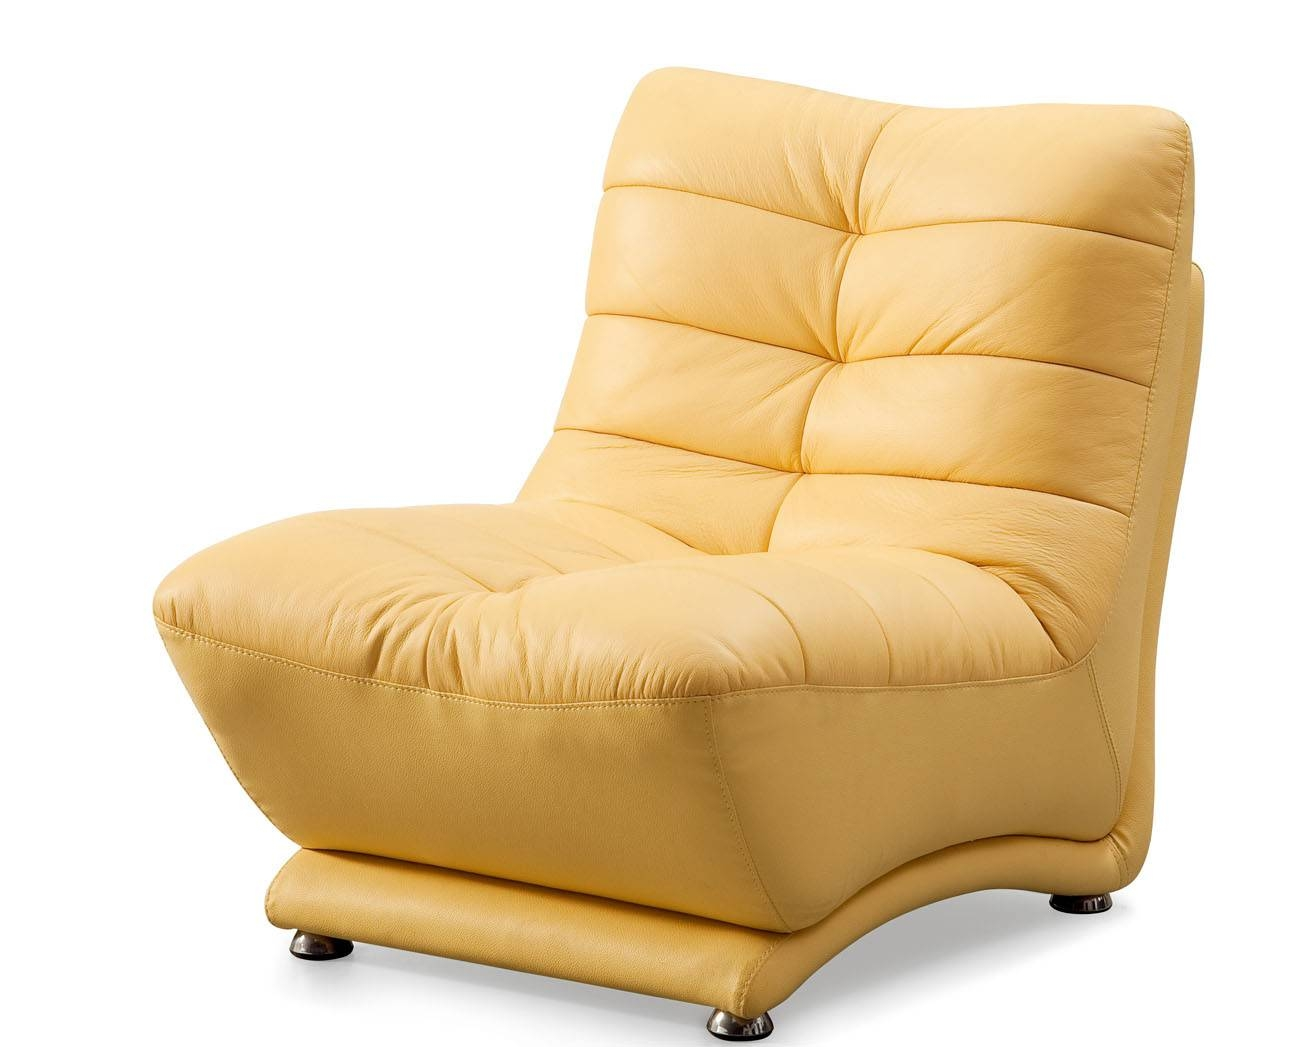 Furniture Home : Sofa Chairs Furniture Designs (30) Modern Elegant With Regard To Sofa Chairs (View 15 of 30)